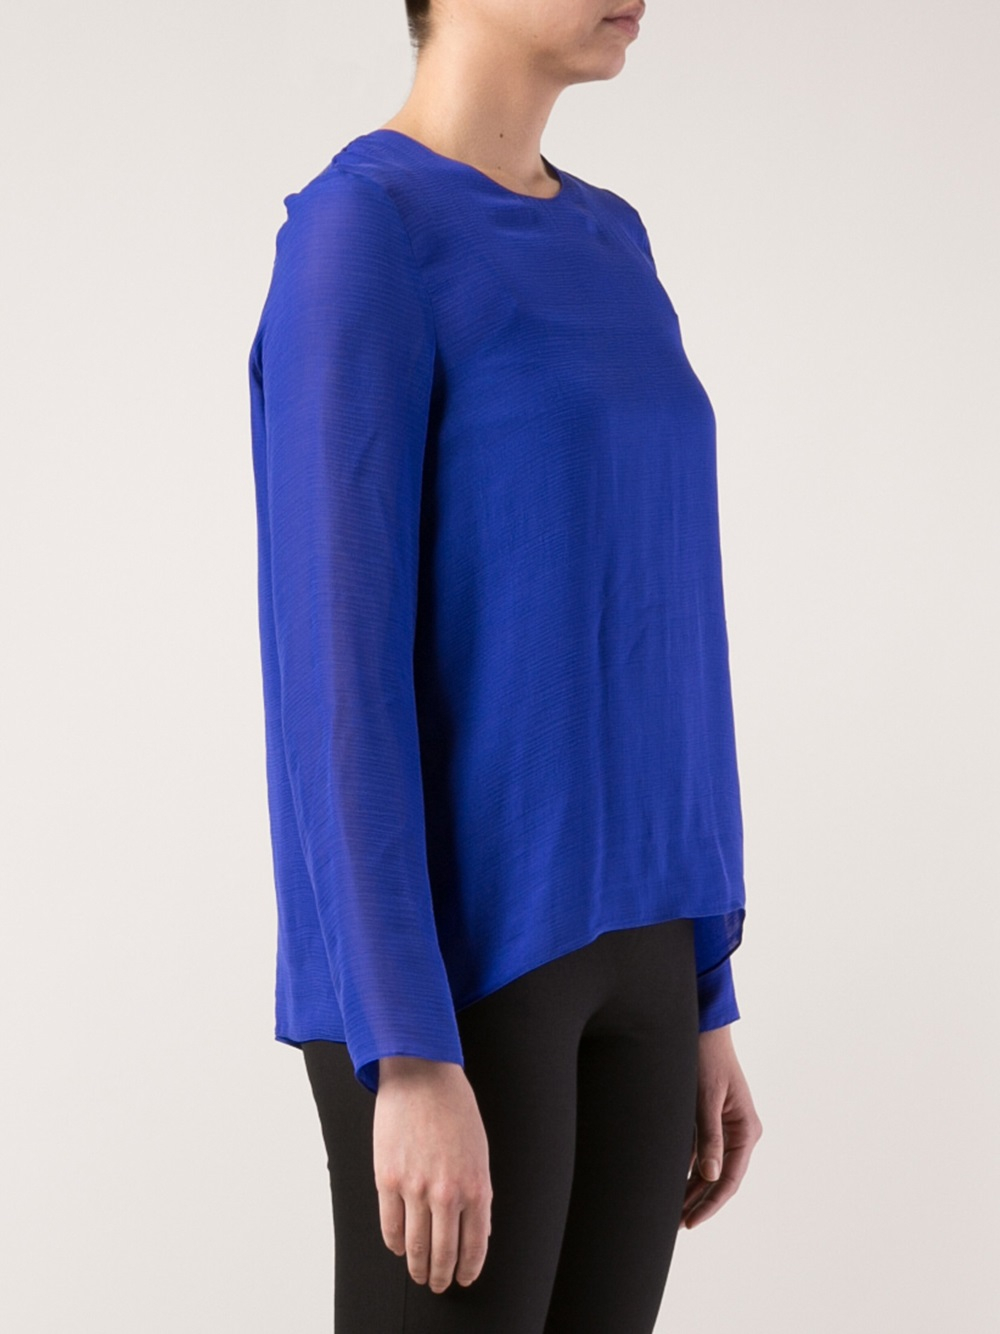 You searched for: blue sheer blouse! Etsy is the home to thousands of handmade, vintage, and one-of-a-kind products and gifts related to your search. No matter what you're looking for or where you are in the world, our global marketplace of sellers can help you find unique and affordable options. Let's get started!